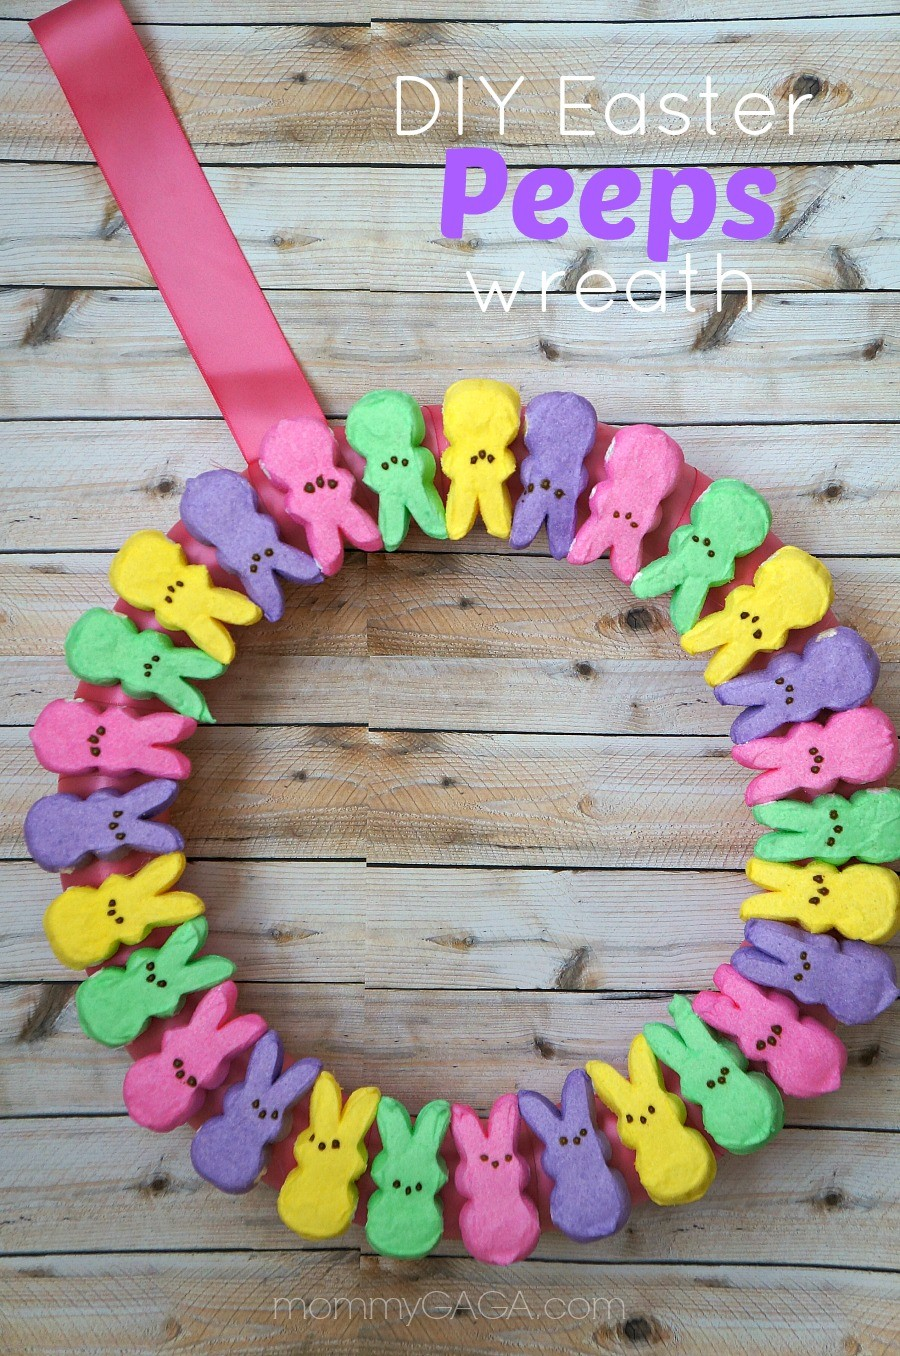 DIY Easter PEEPS wreath craft - what an adorable homemade Easter decoration!